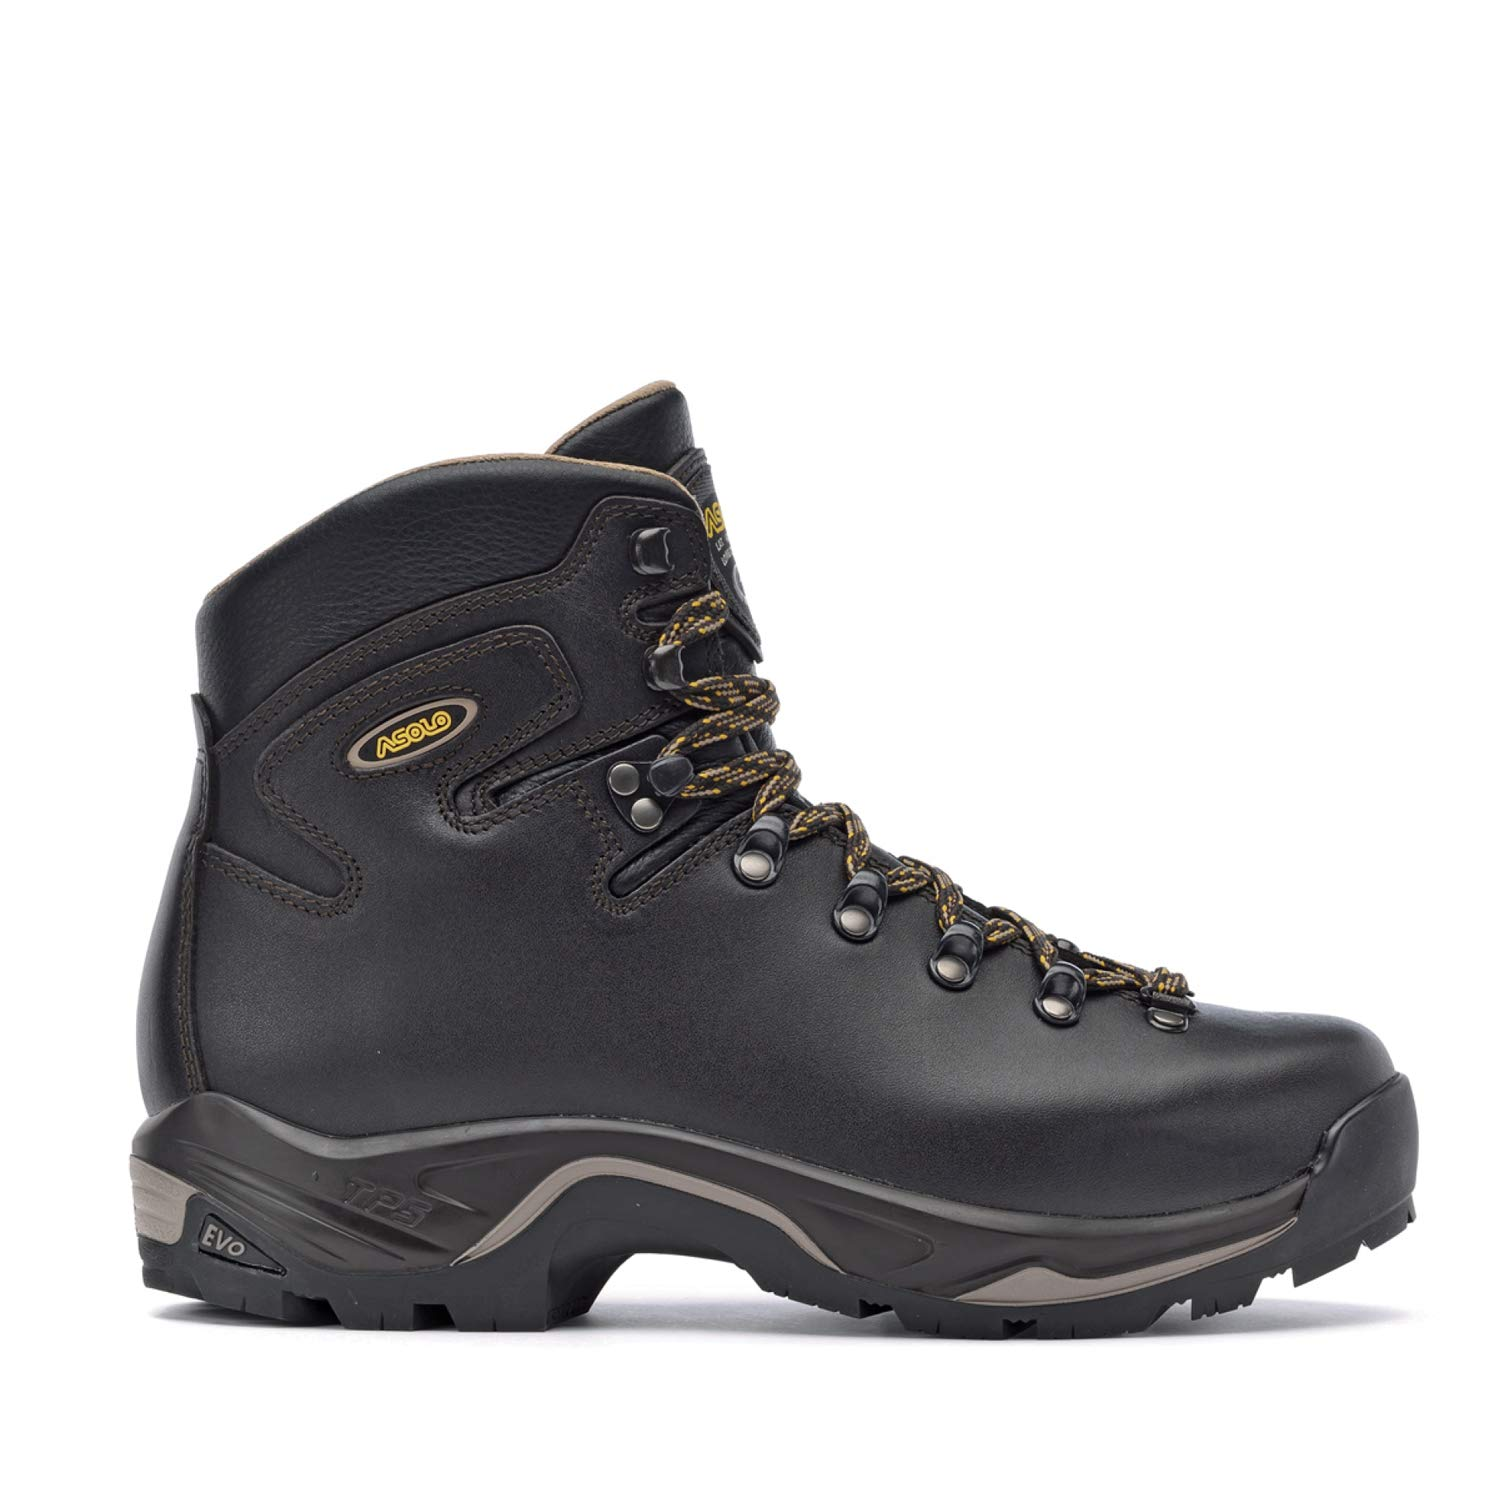 Asolo TPS 535 LTH V EVO Men's Waterproof Hiking Boot for Backpacking, Technical terrains, and Long Distance Hiking Brown by Asolo